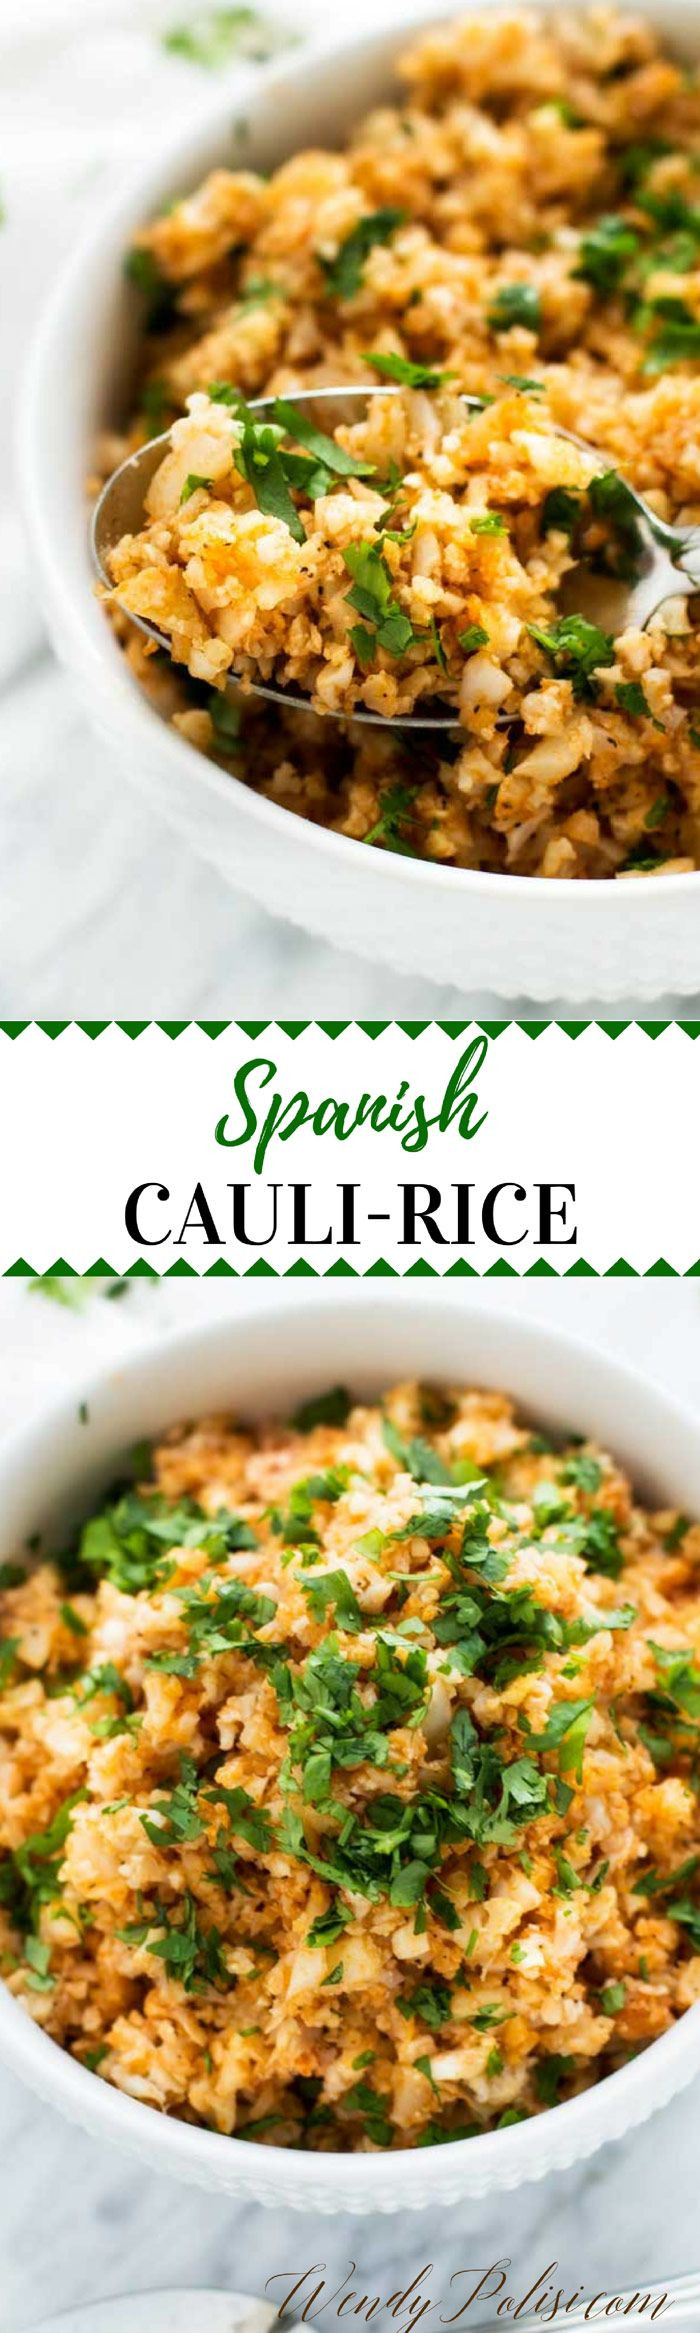 Low Carb Mexican Side Dishes  Spanish Cauliflower Rice Recipe